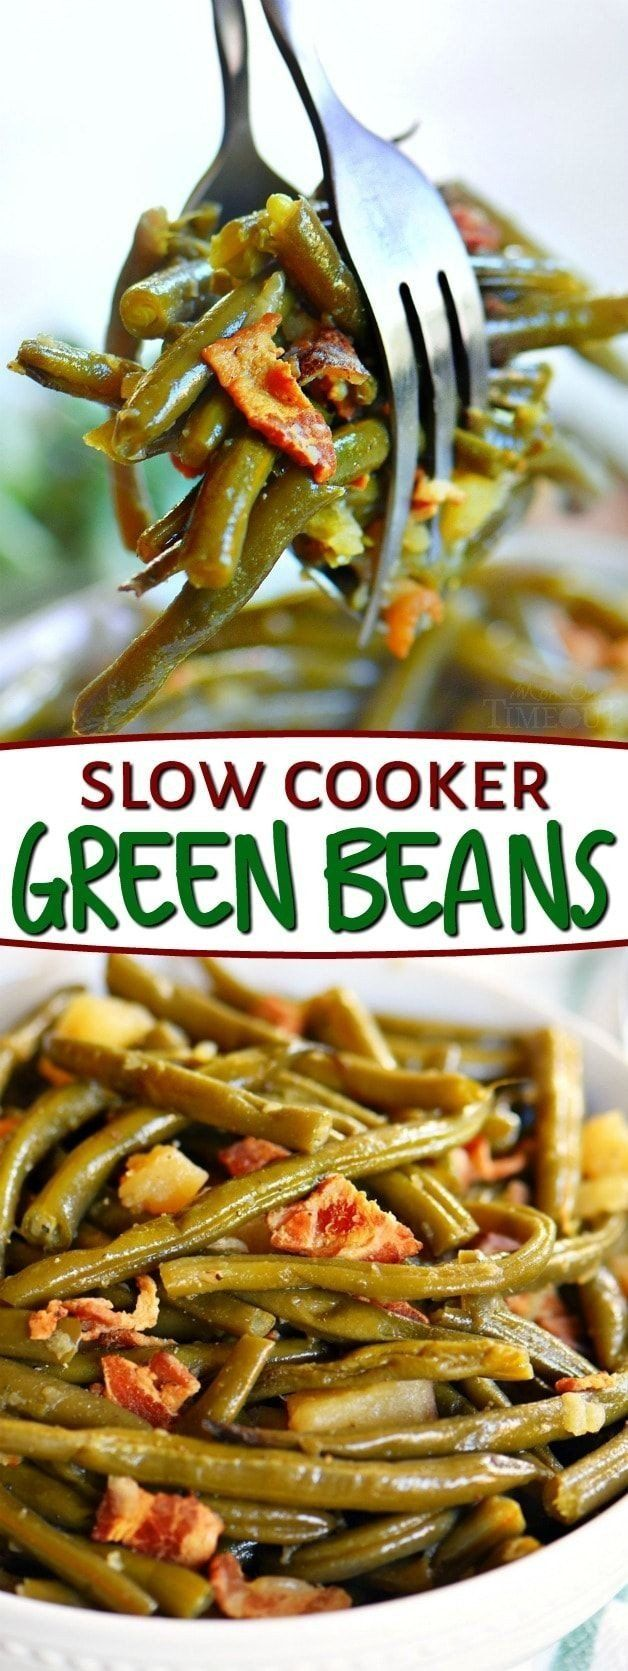 62 Melt-In-Your-Mouth Slow Cooker Recipes to Keep You Warm #meltingpotrecipes